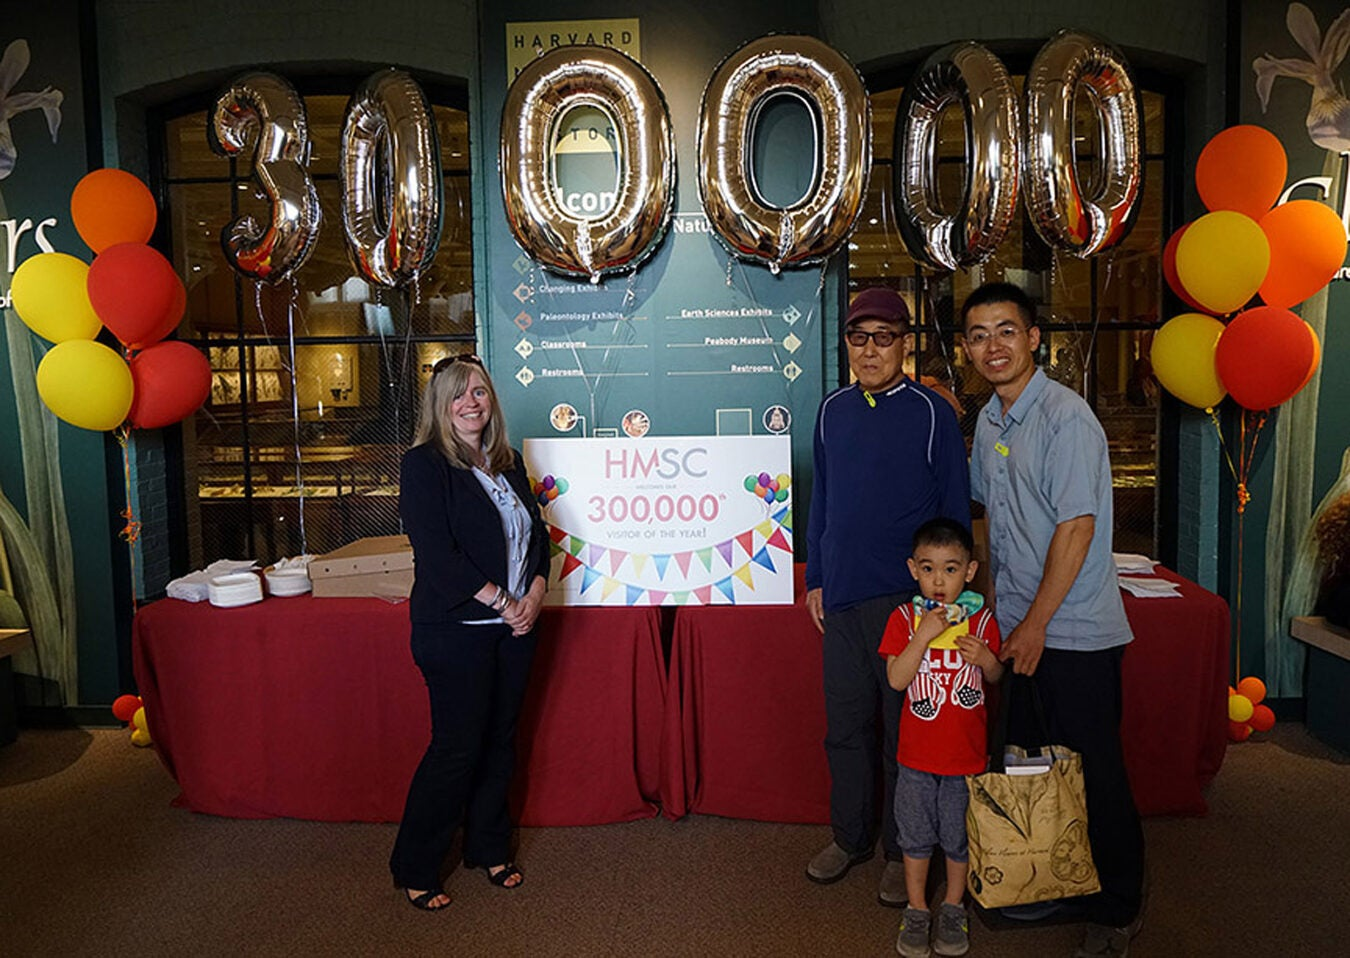 The 300,000 visitors to the museum standing with balloons